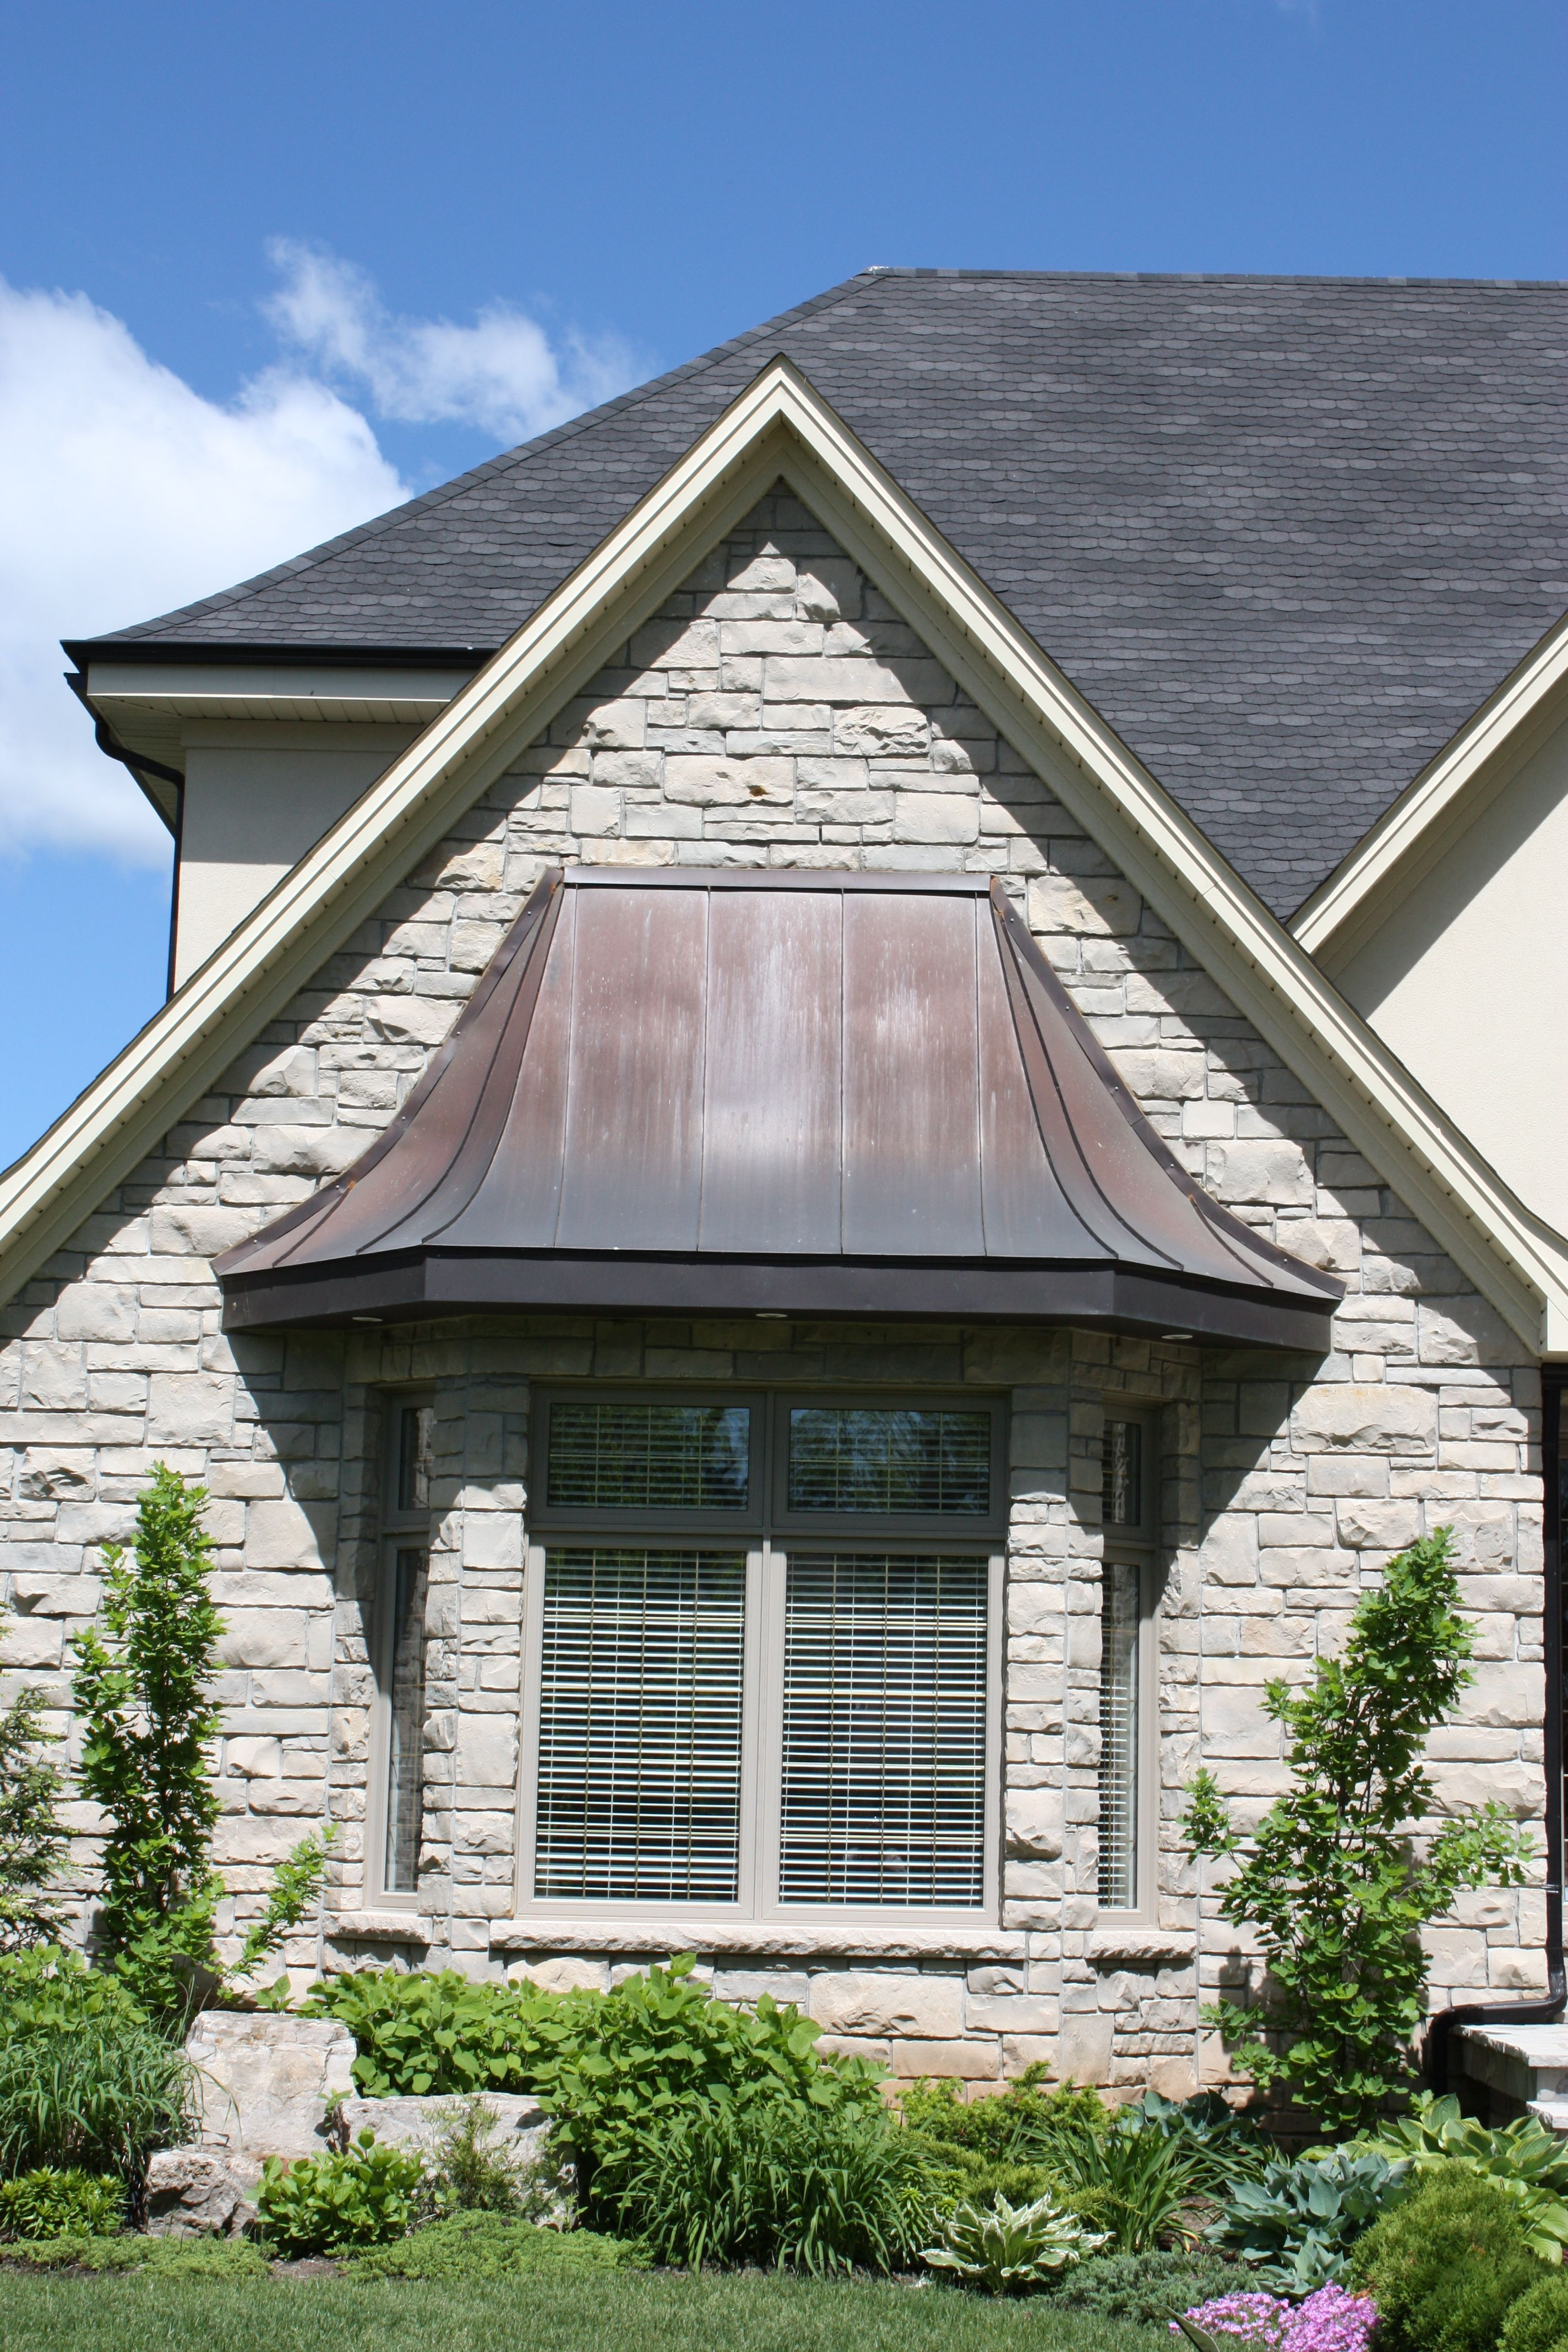 Exterior bay windows - Copper Roofing Over Bay Windows Copper Roofing Upper Canada Cedar Roof